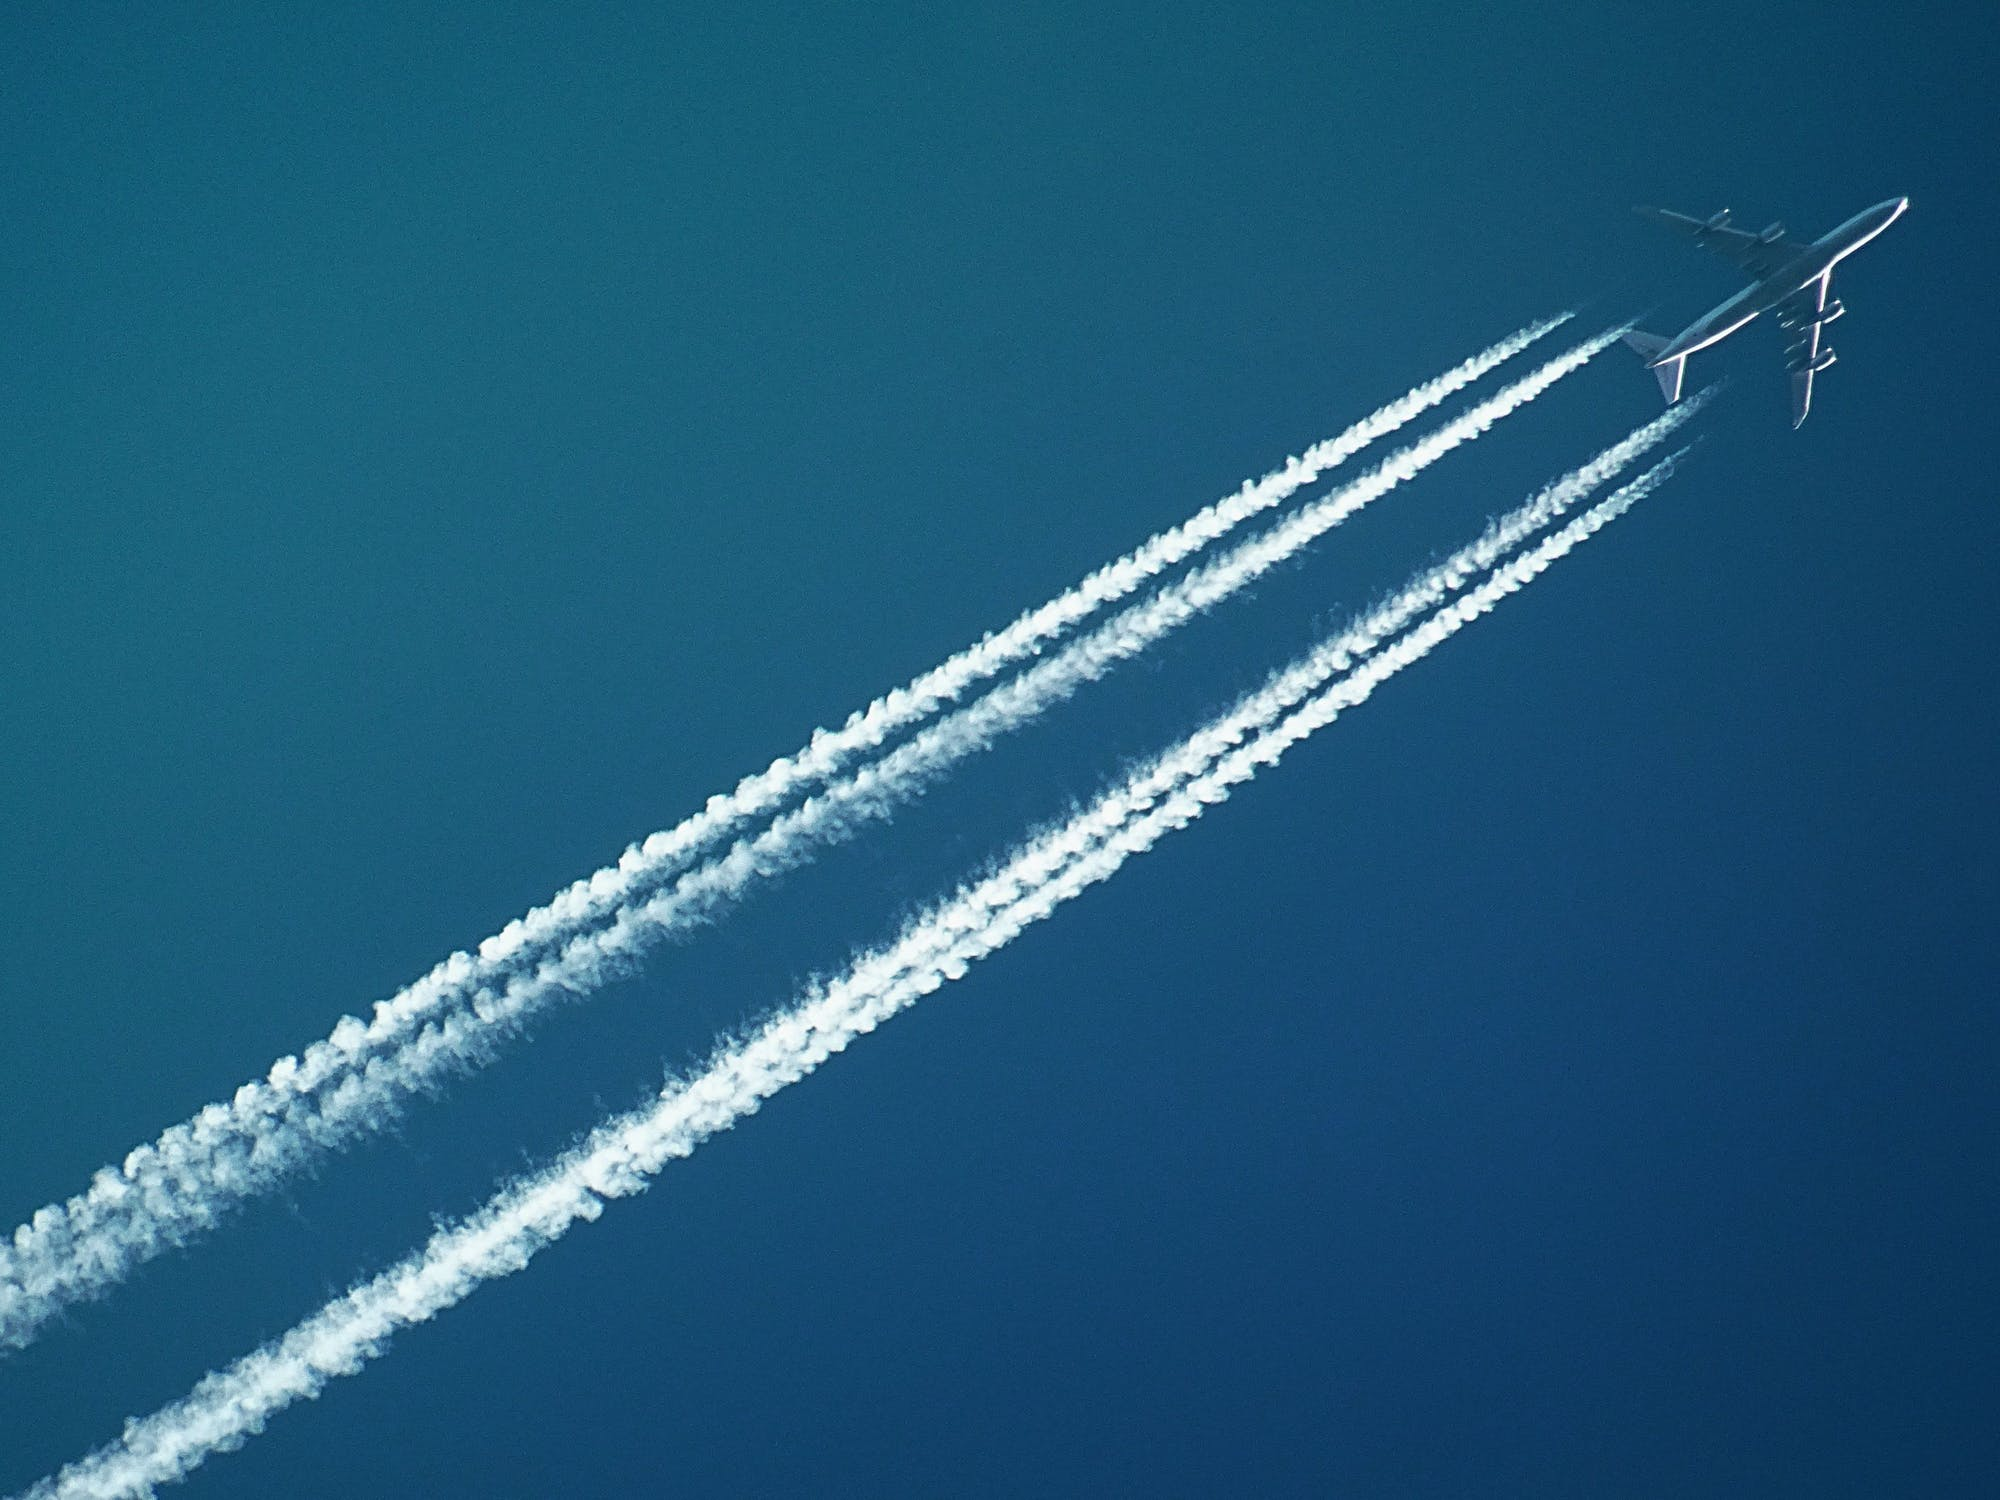 Airlines to Experiment With Flight Paths to Lower Emissions